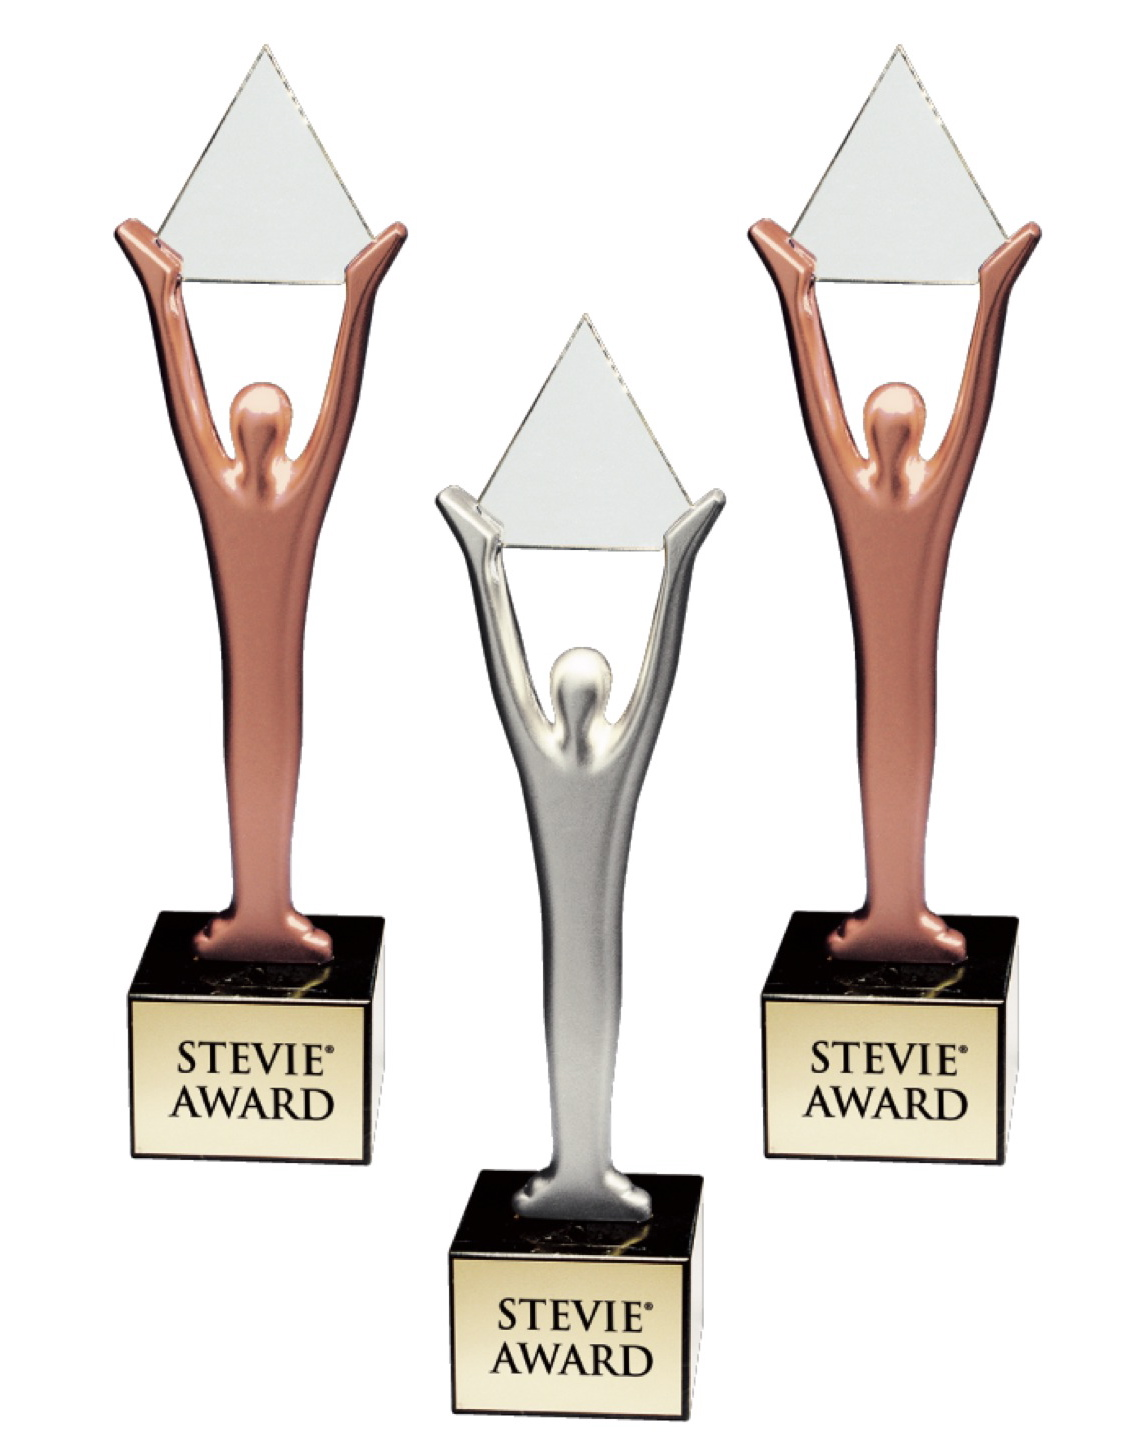 Vemma garners a Silver and two Bronze Stevie Awards in 2012 American Business Awards.